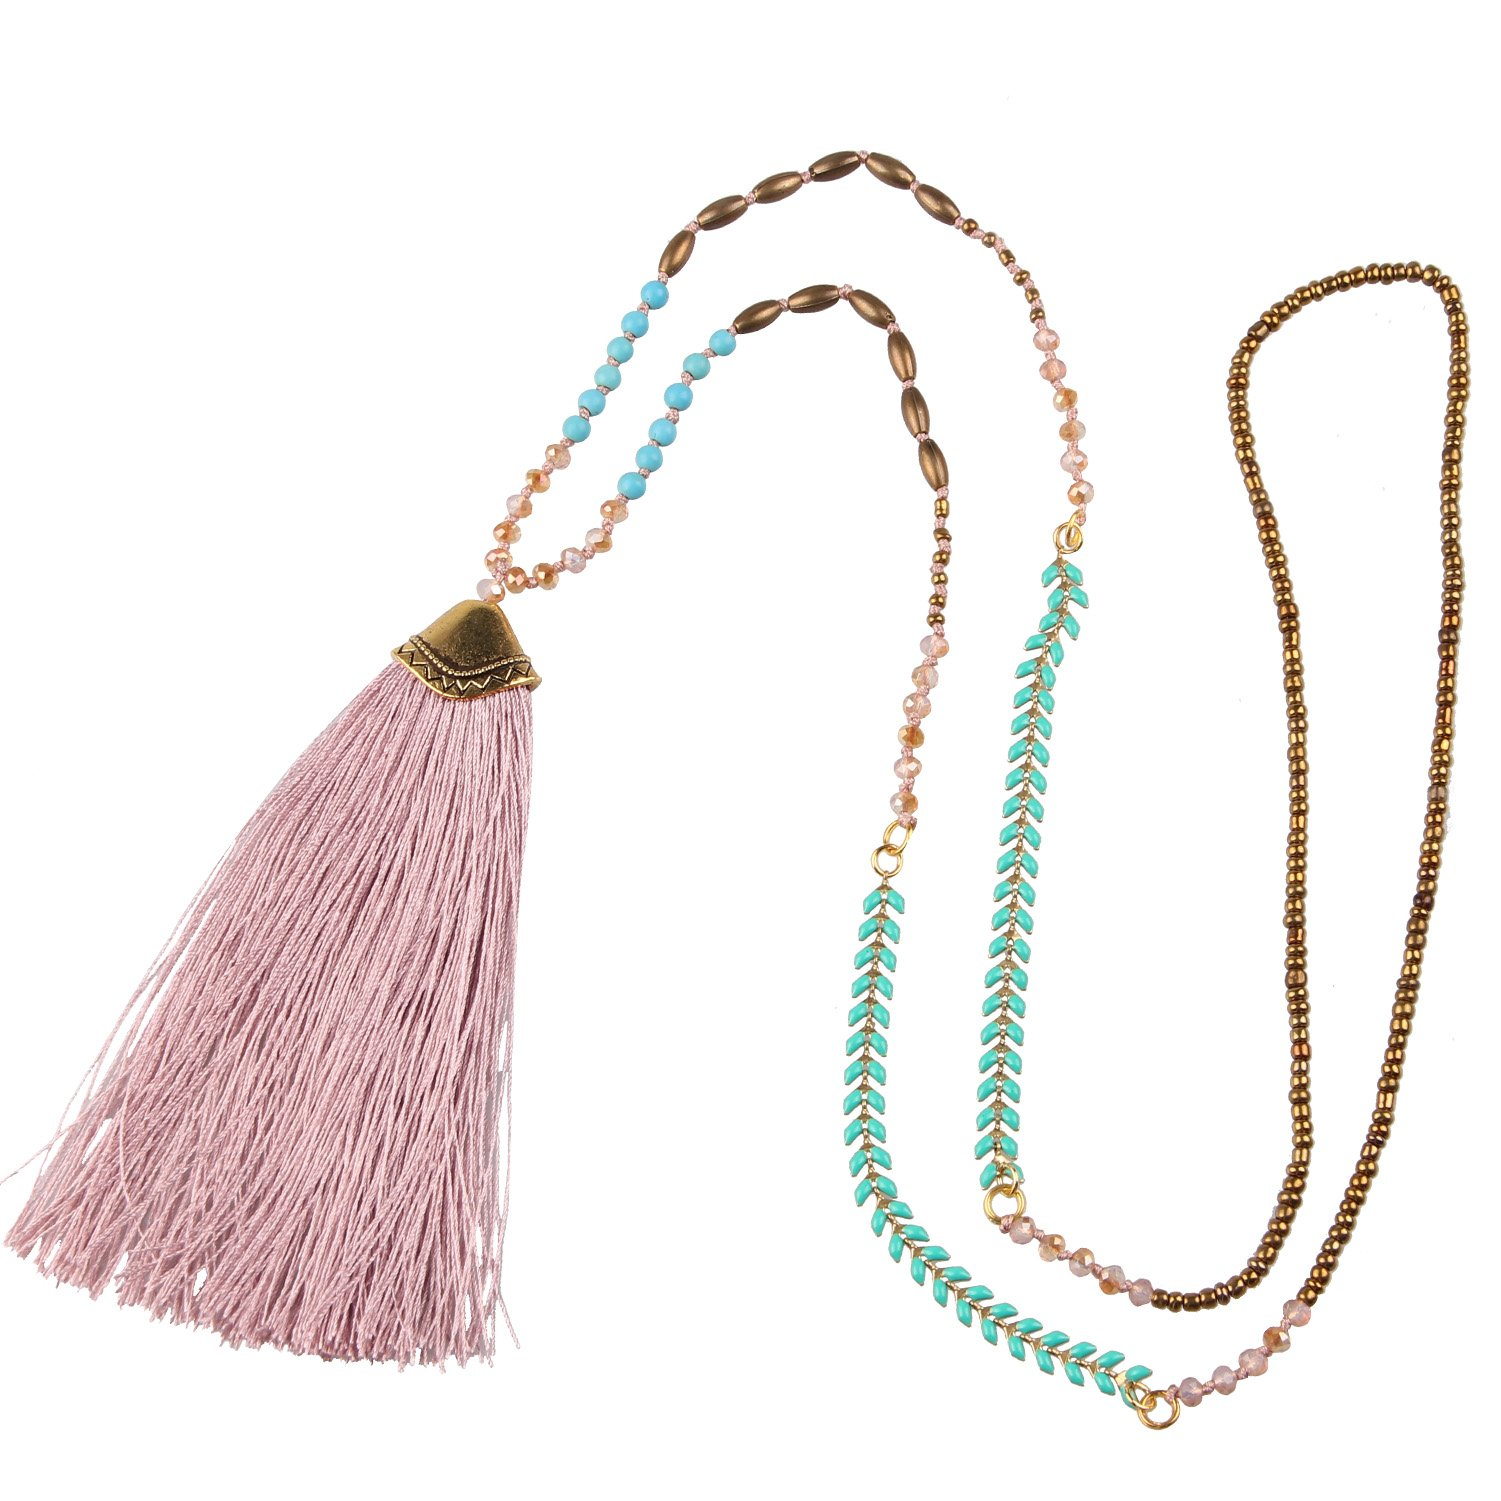 KELITCH Bohemian Tassel Necklace Hand Knotted Synthetic-Turquoise Beads Chain Necklace, Light Pink